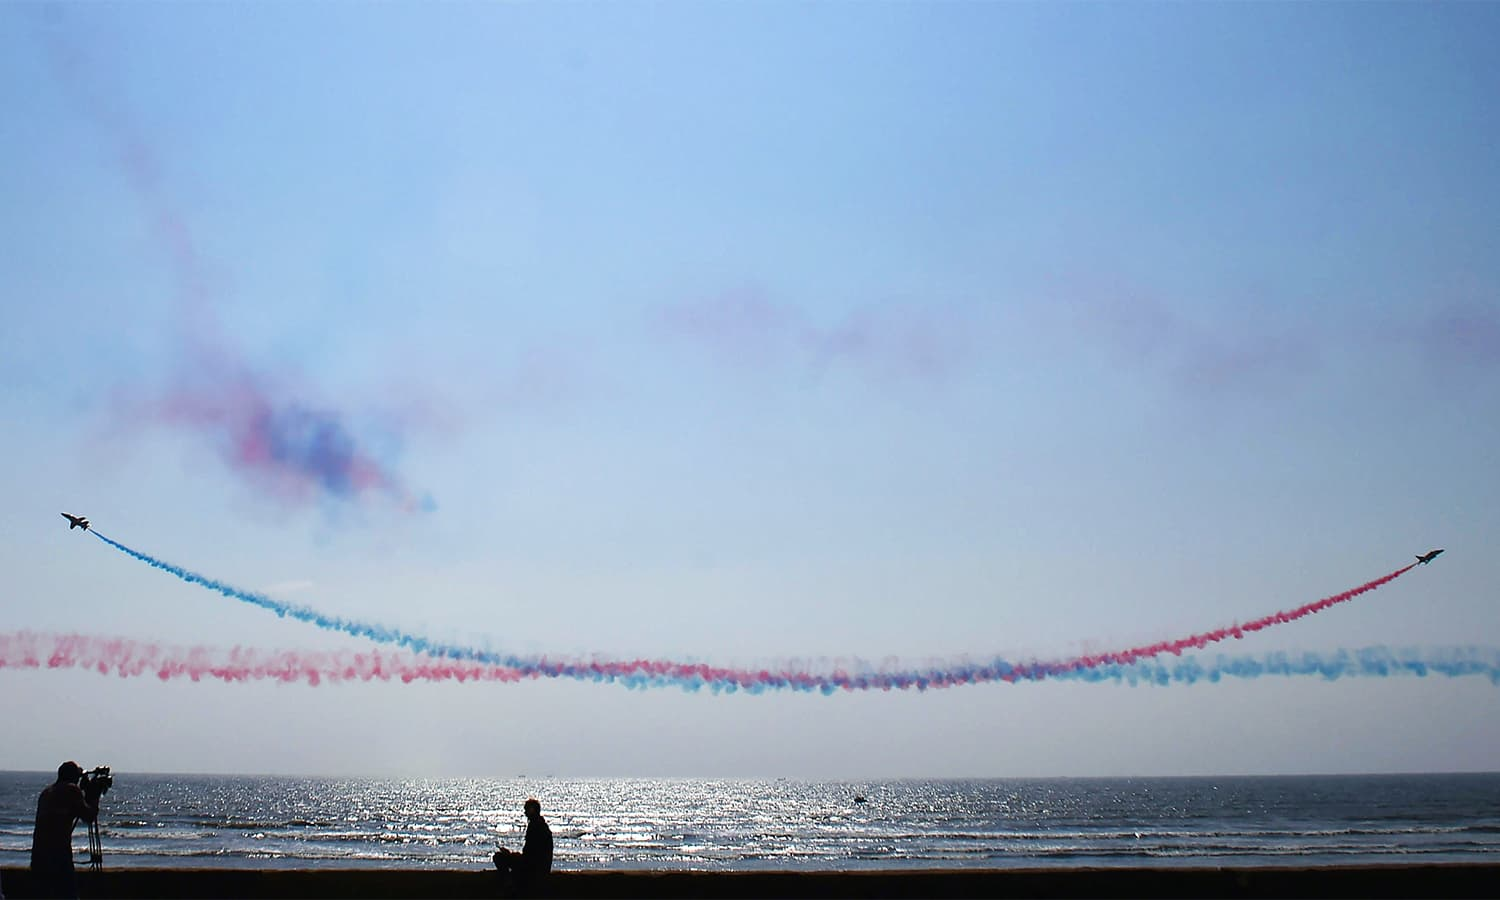 RAF's aerobatic team, the 'Red Arrows', performs aerial manoeuvres during an airshow at Sea View. — AFP